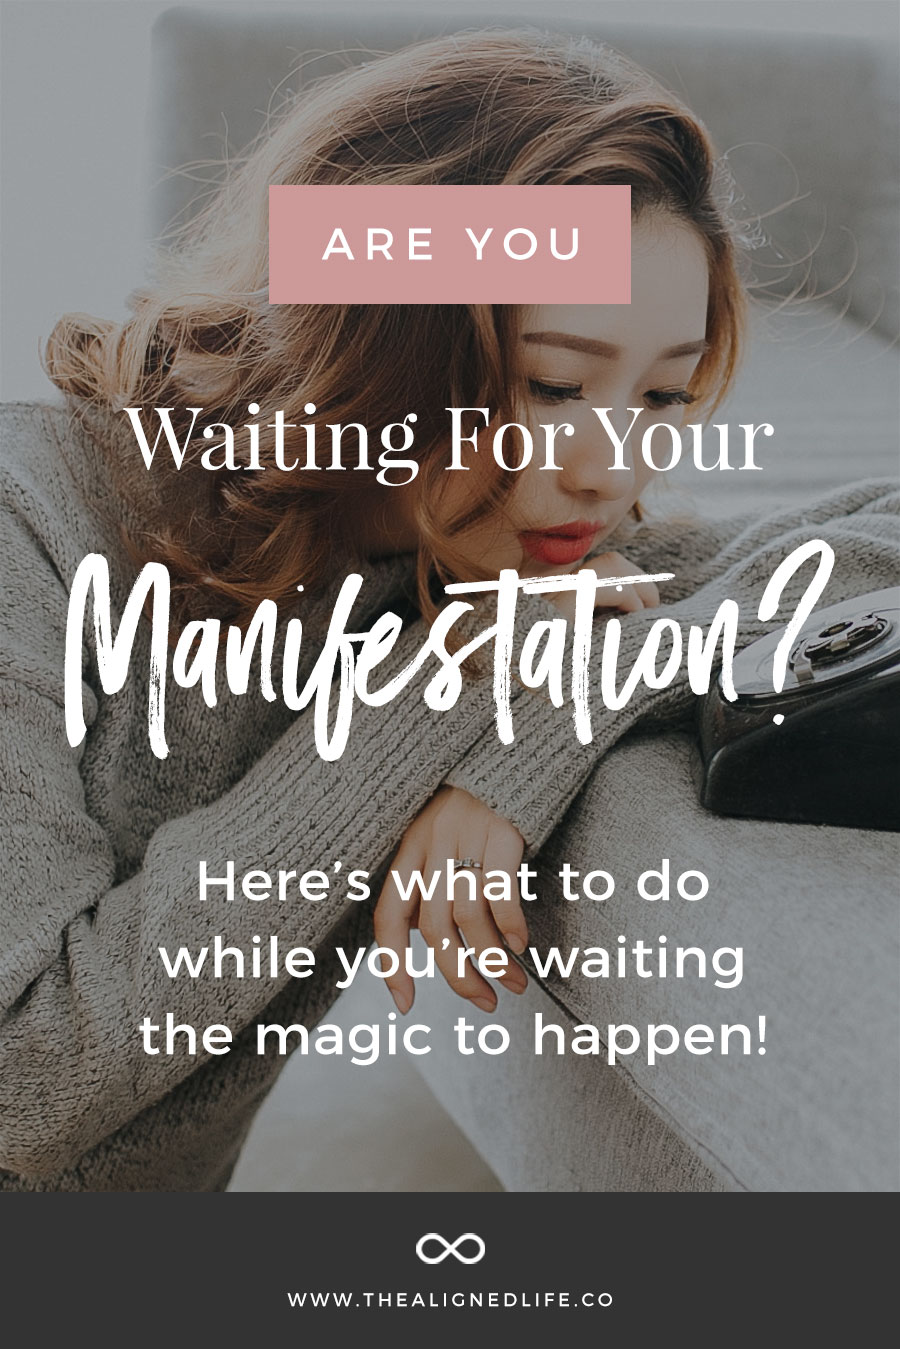 Are You Waiting For Your Manifestation? Here's What To Do